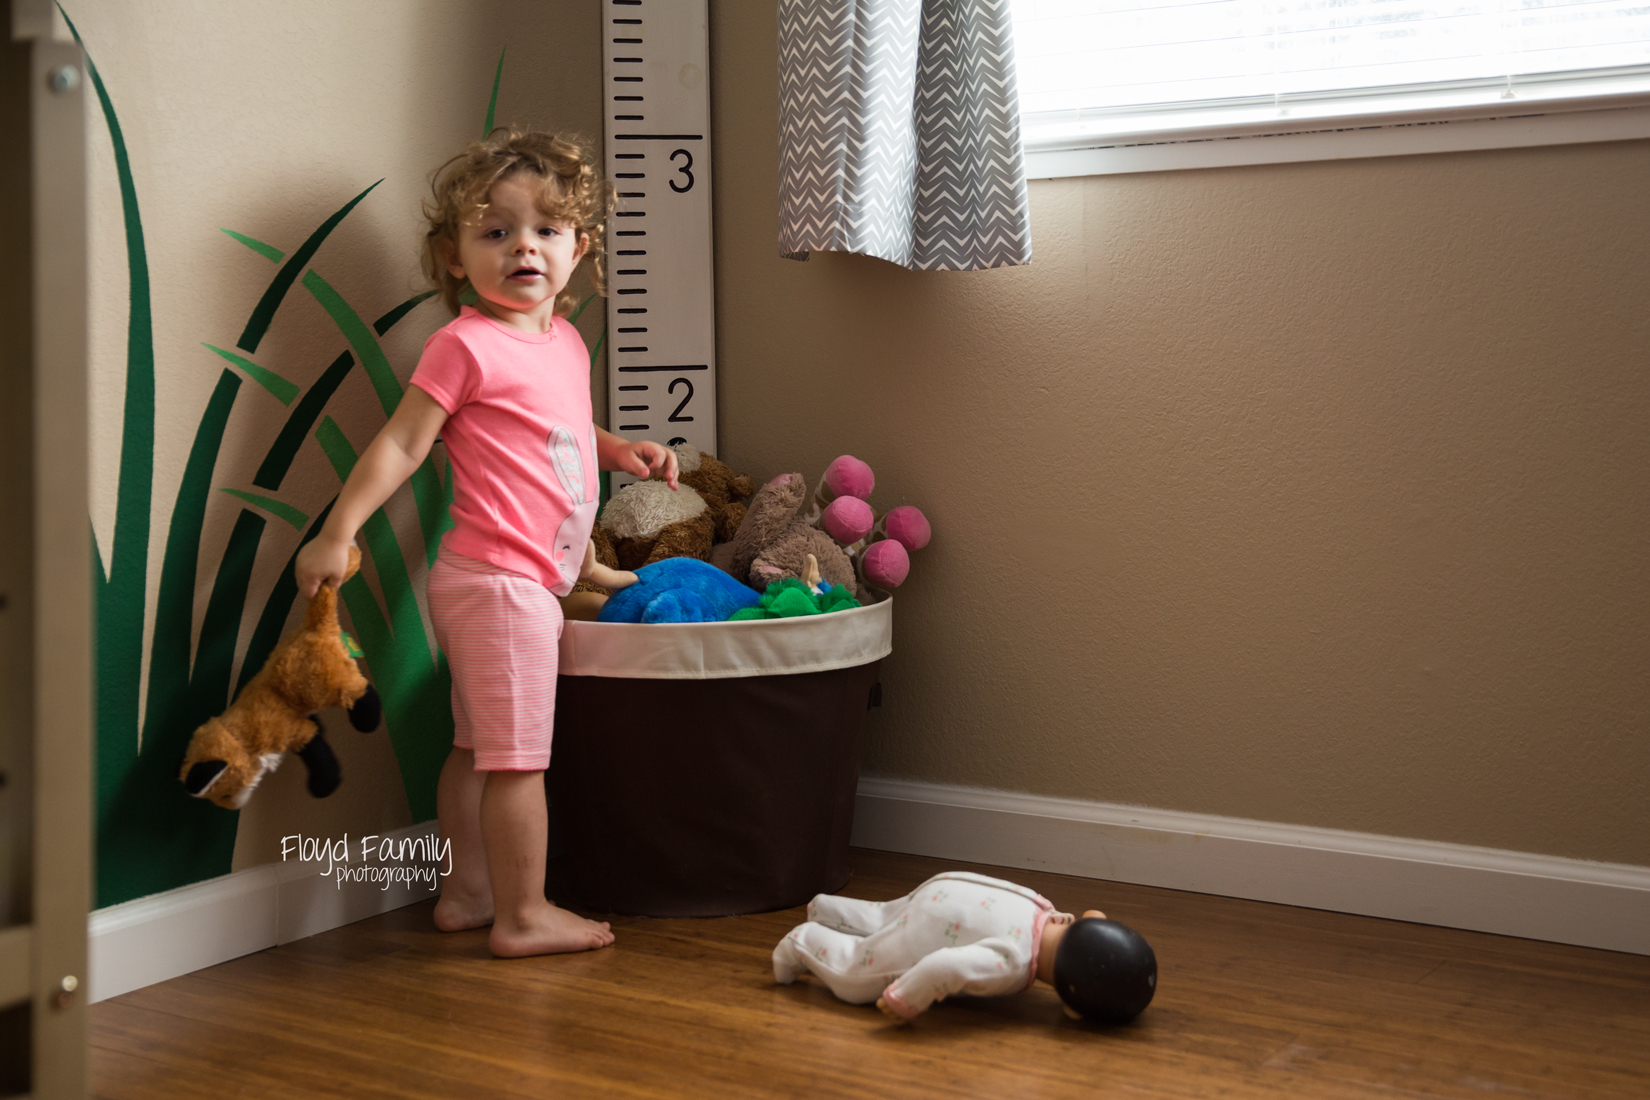 Little girl playing with stuffed toys in the toy bin